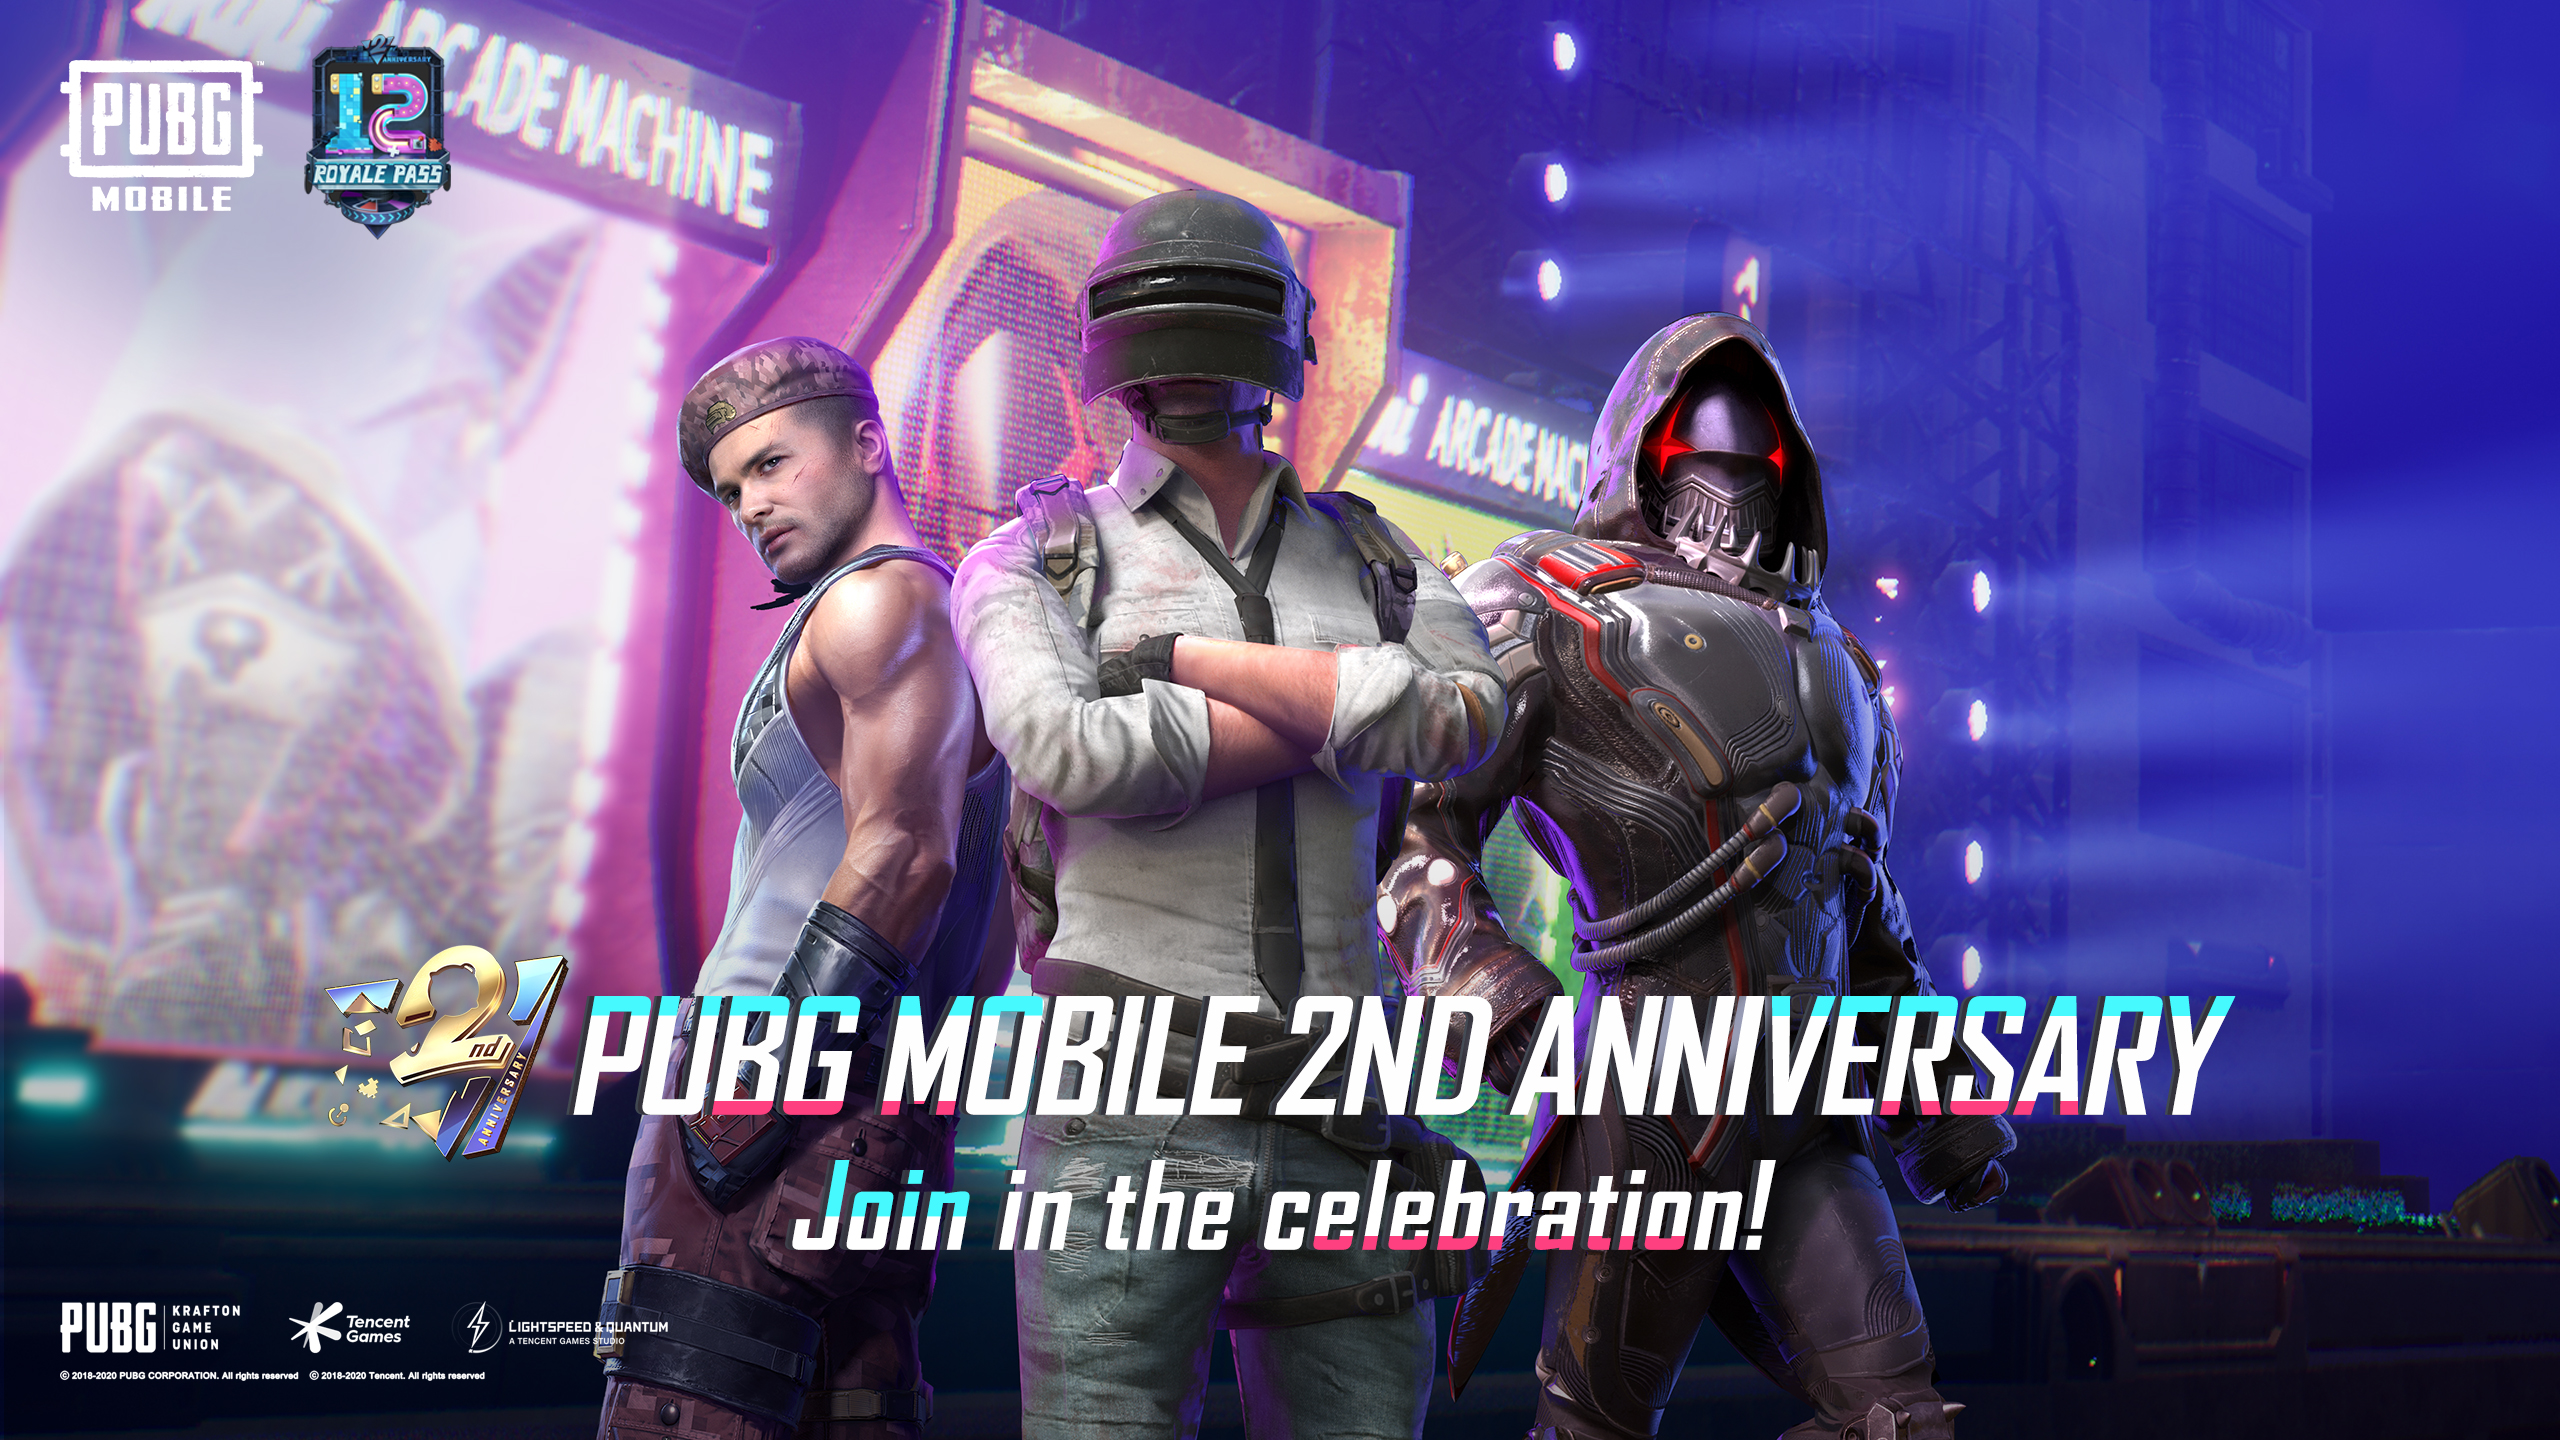 PUBG MOBILE 2ND ANNIVERSARY